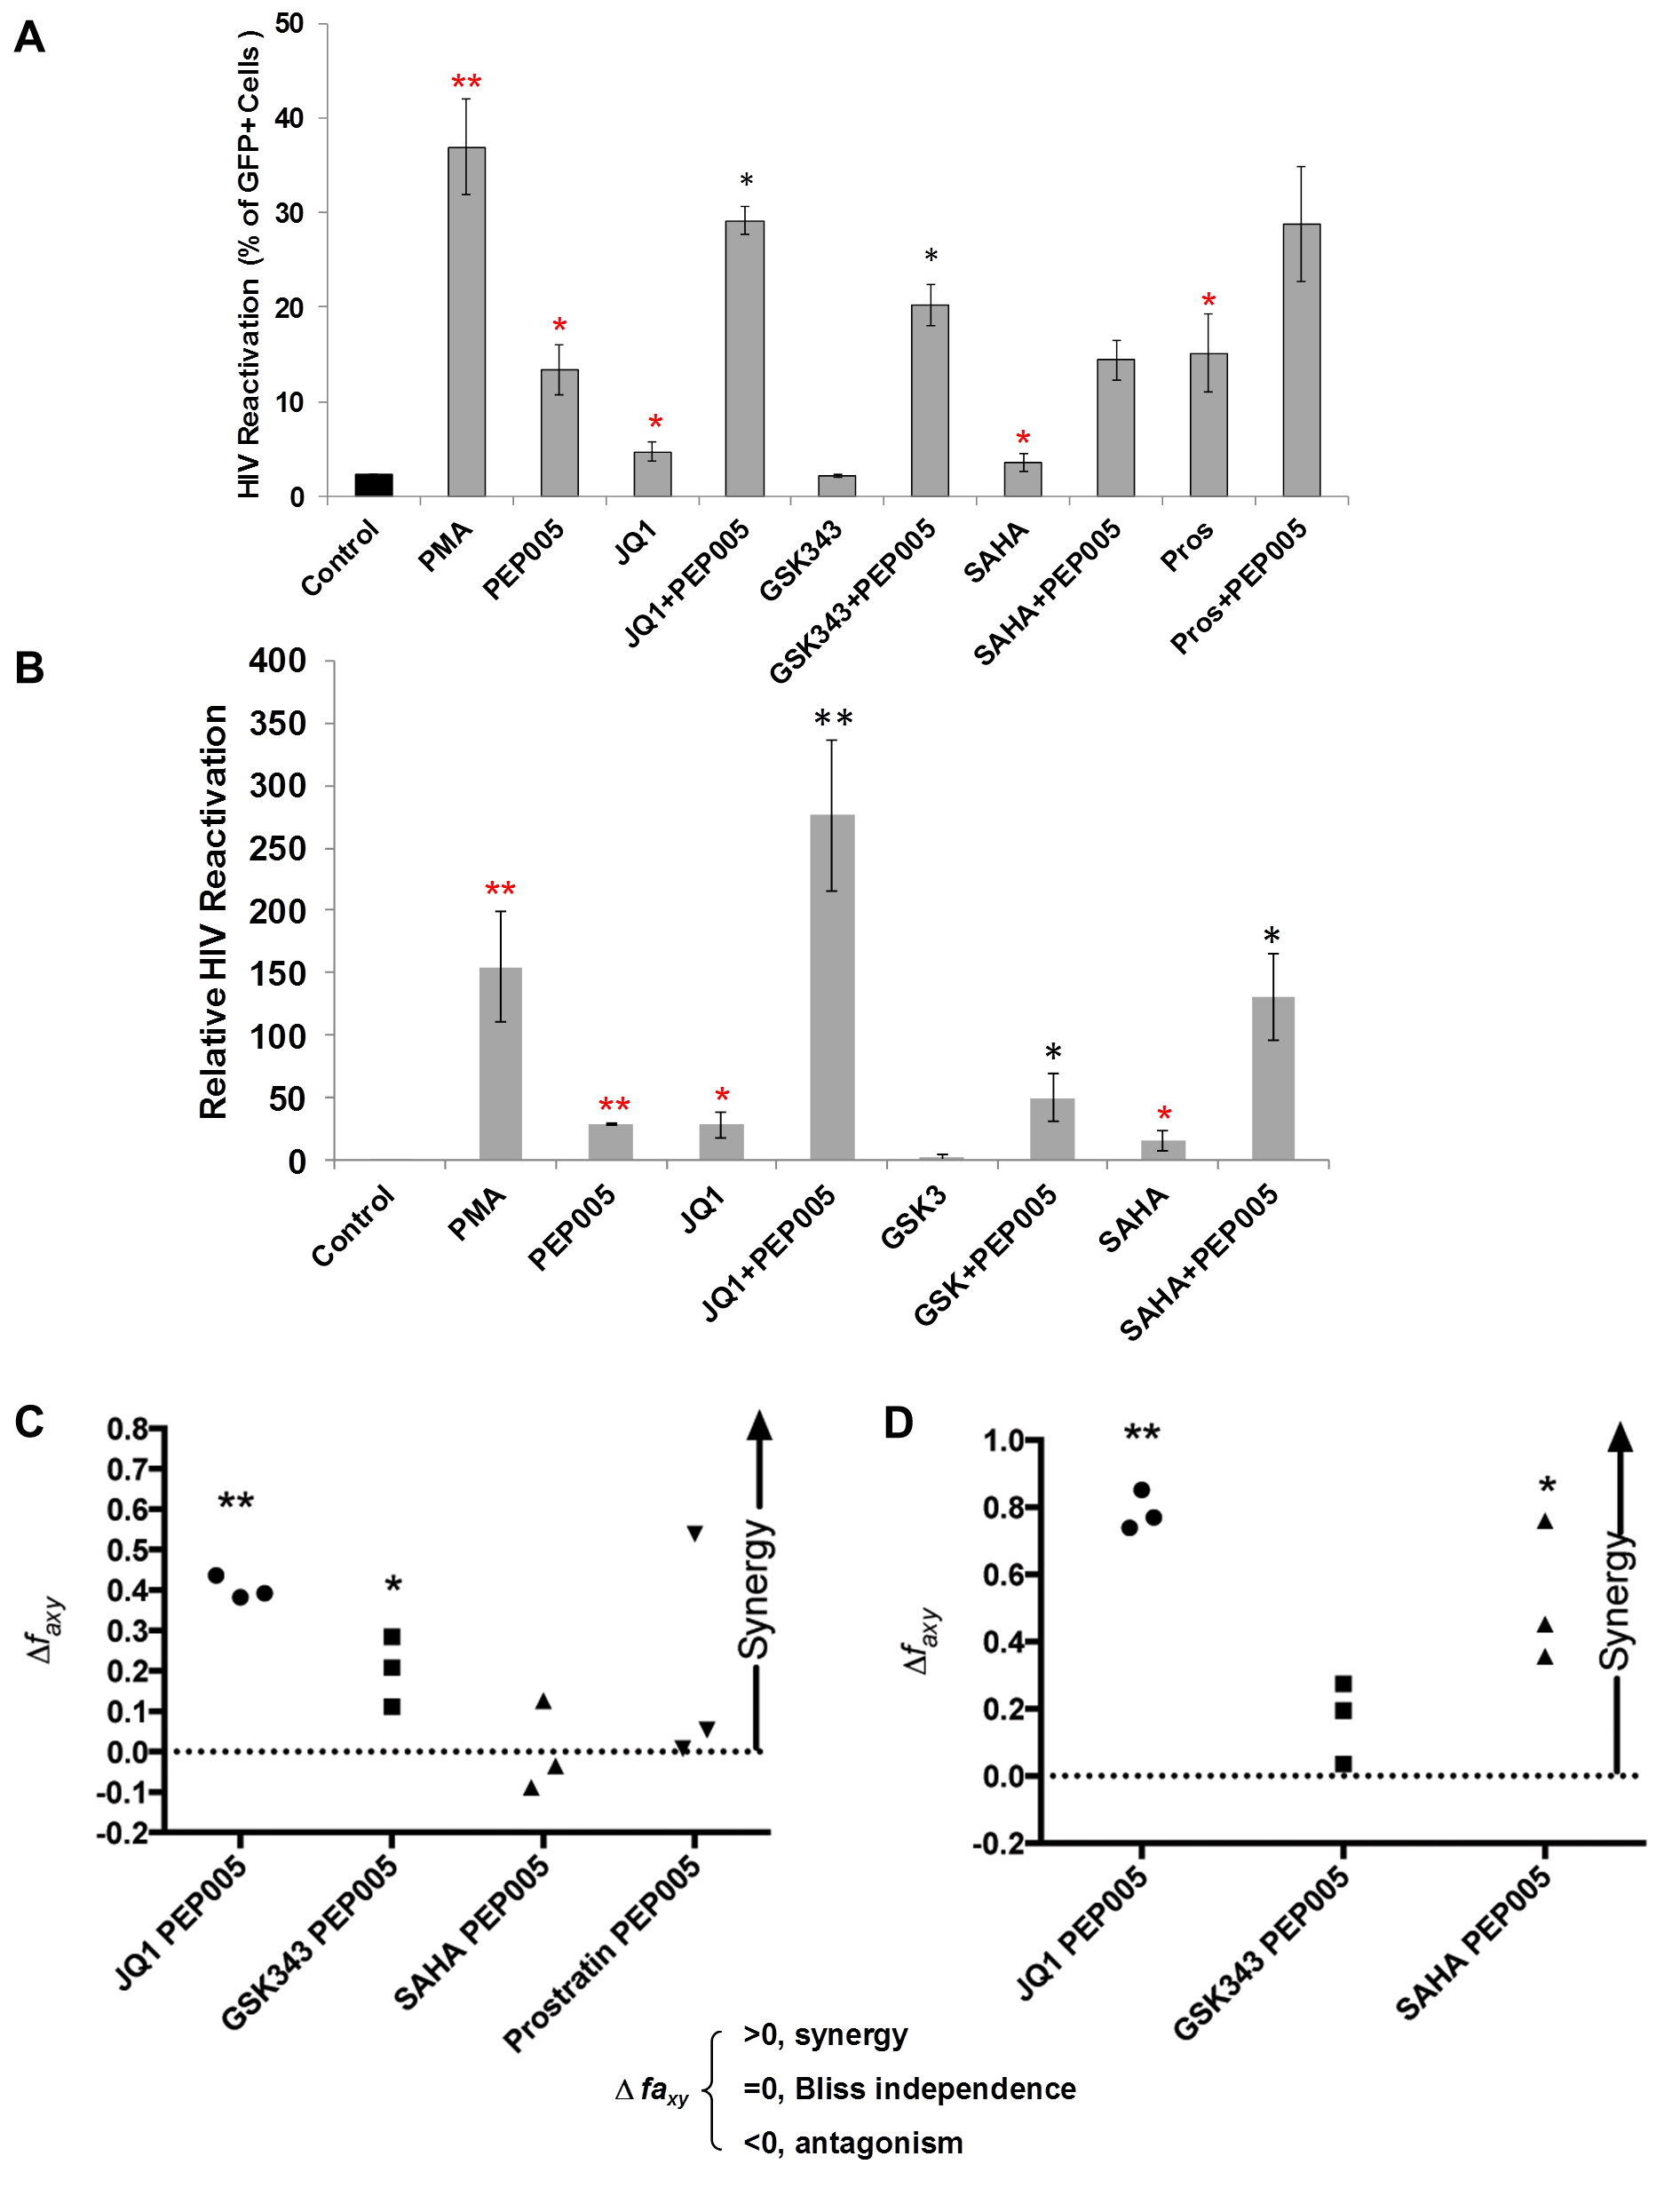 PEP005 synergizes with other latency reversing agents in reactivating latent HIV.